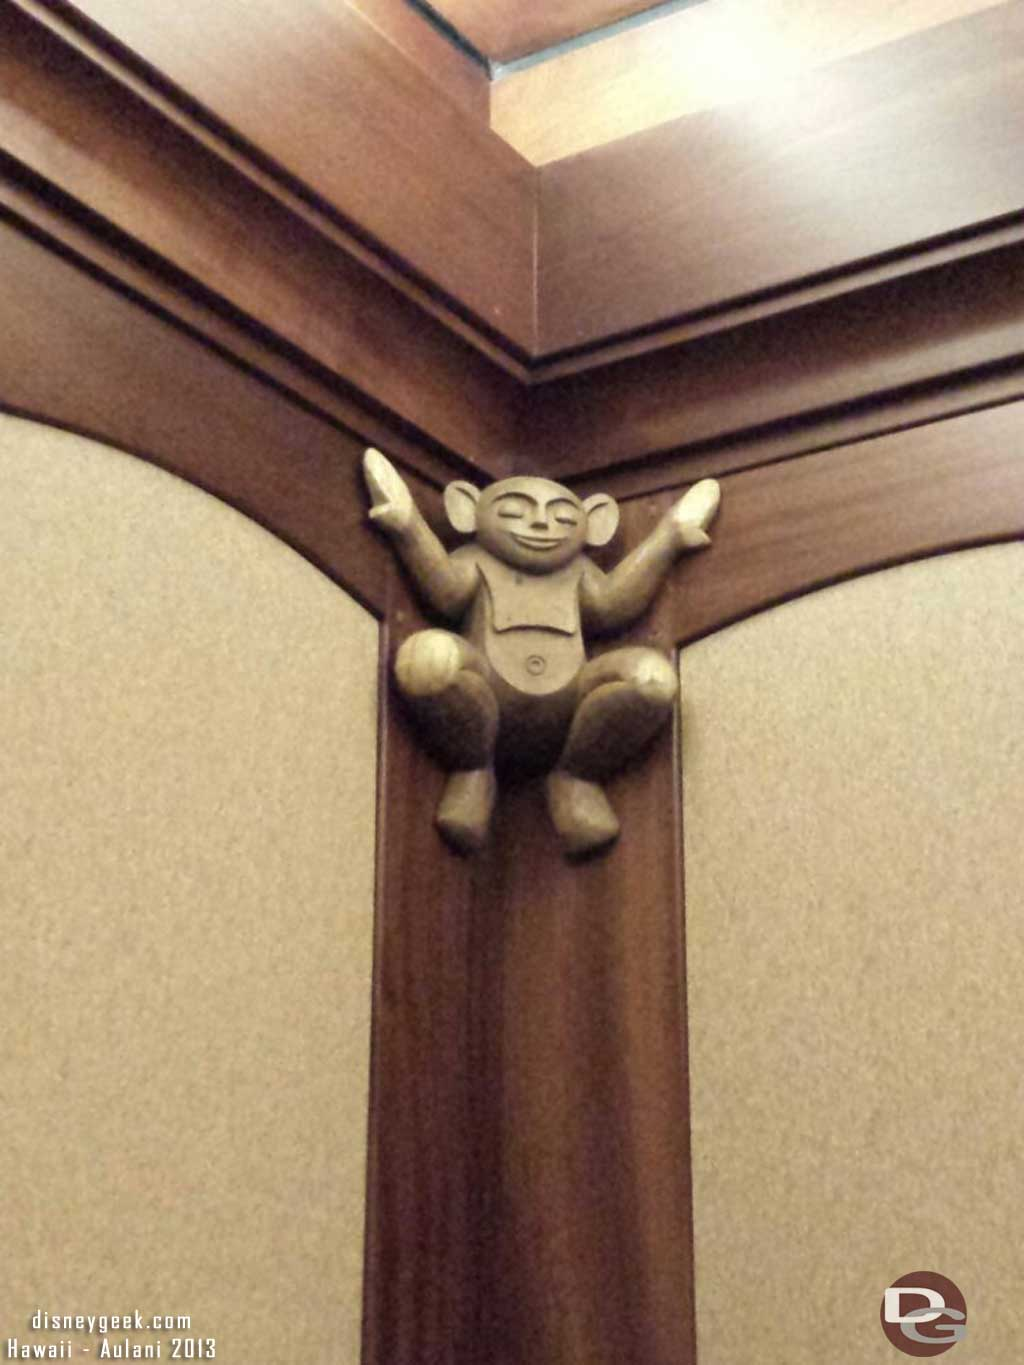 A Menehune hanging around in an elevator #Aulani